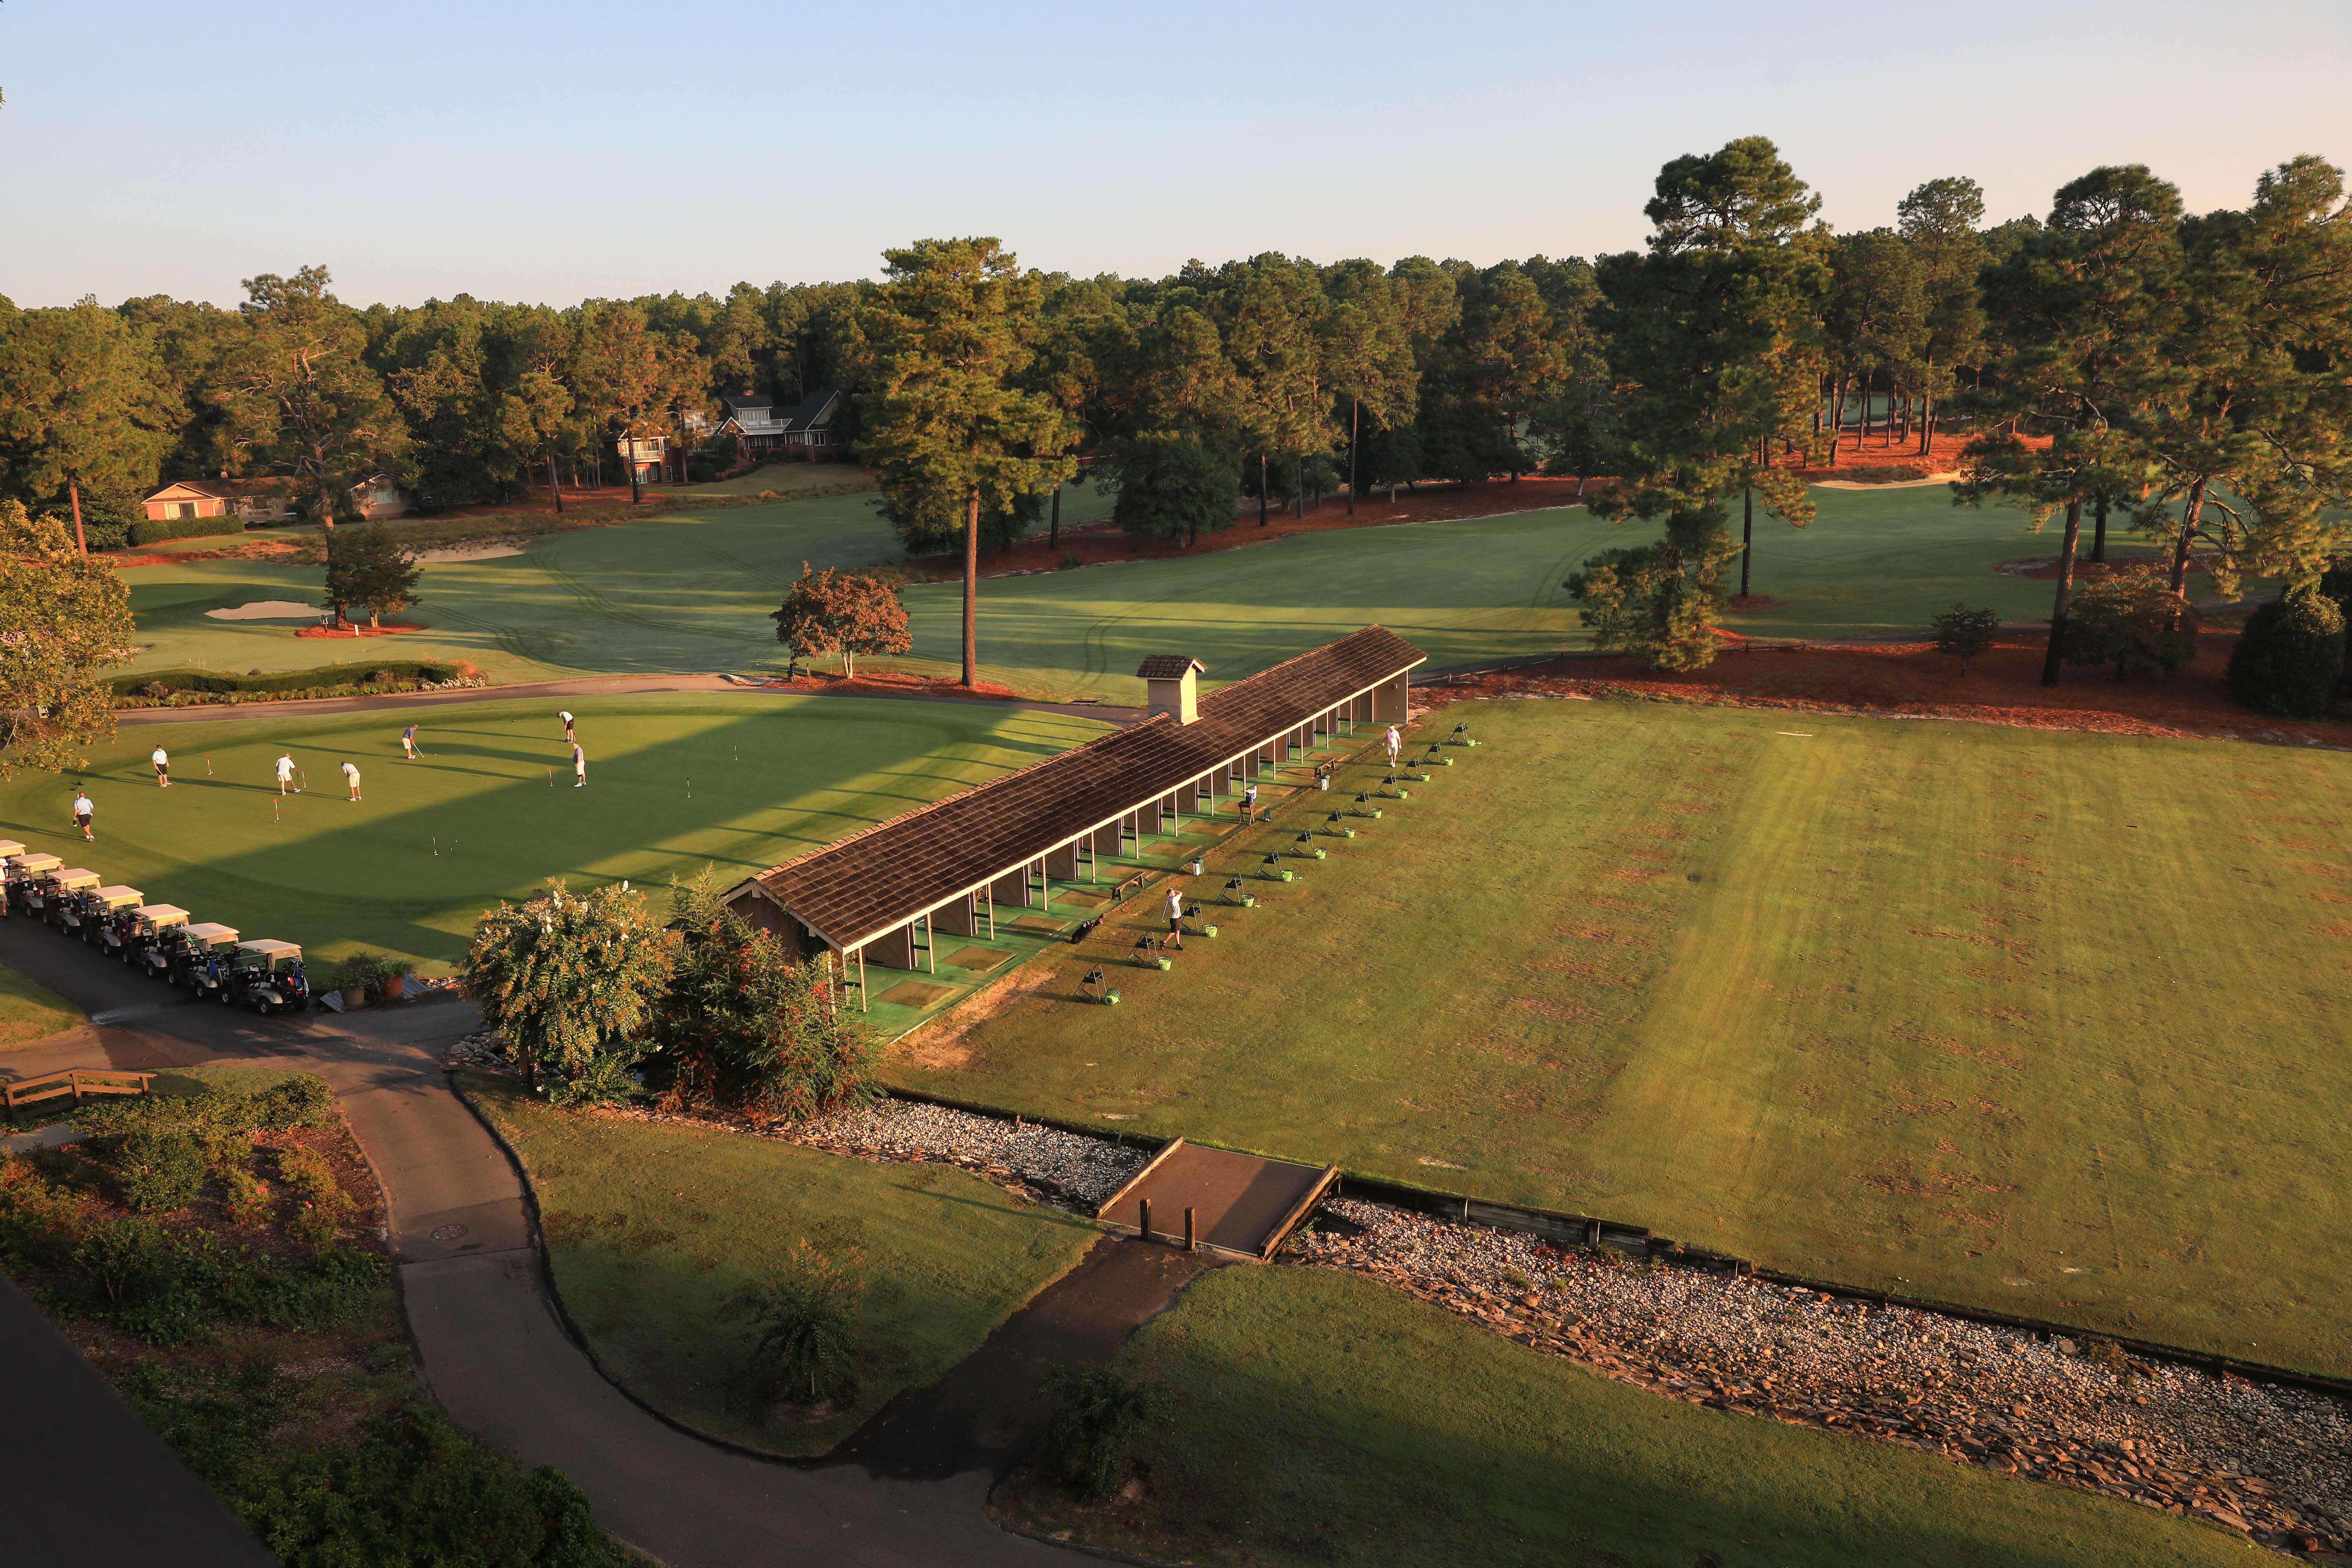 Pine Needles will hold the 2019 U.S. Senior Women's Open in May. (Image: Courtesy Pine Needles Resort)